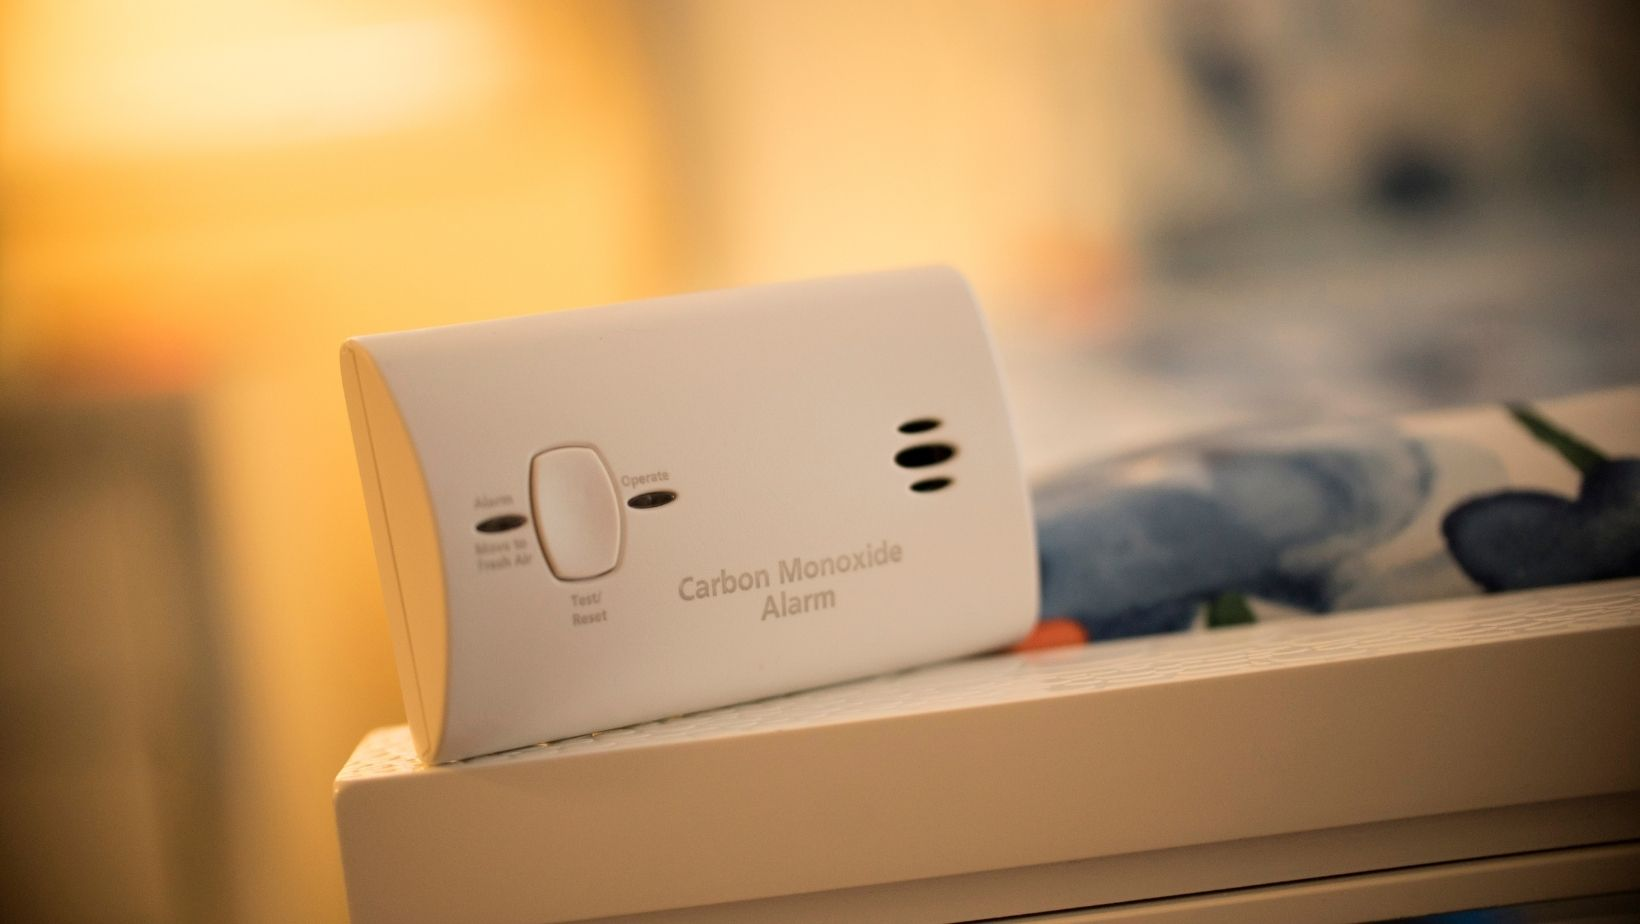 Sensors and alarms are important to help detect carbon monoxide in RVs.